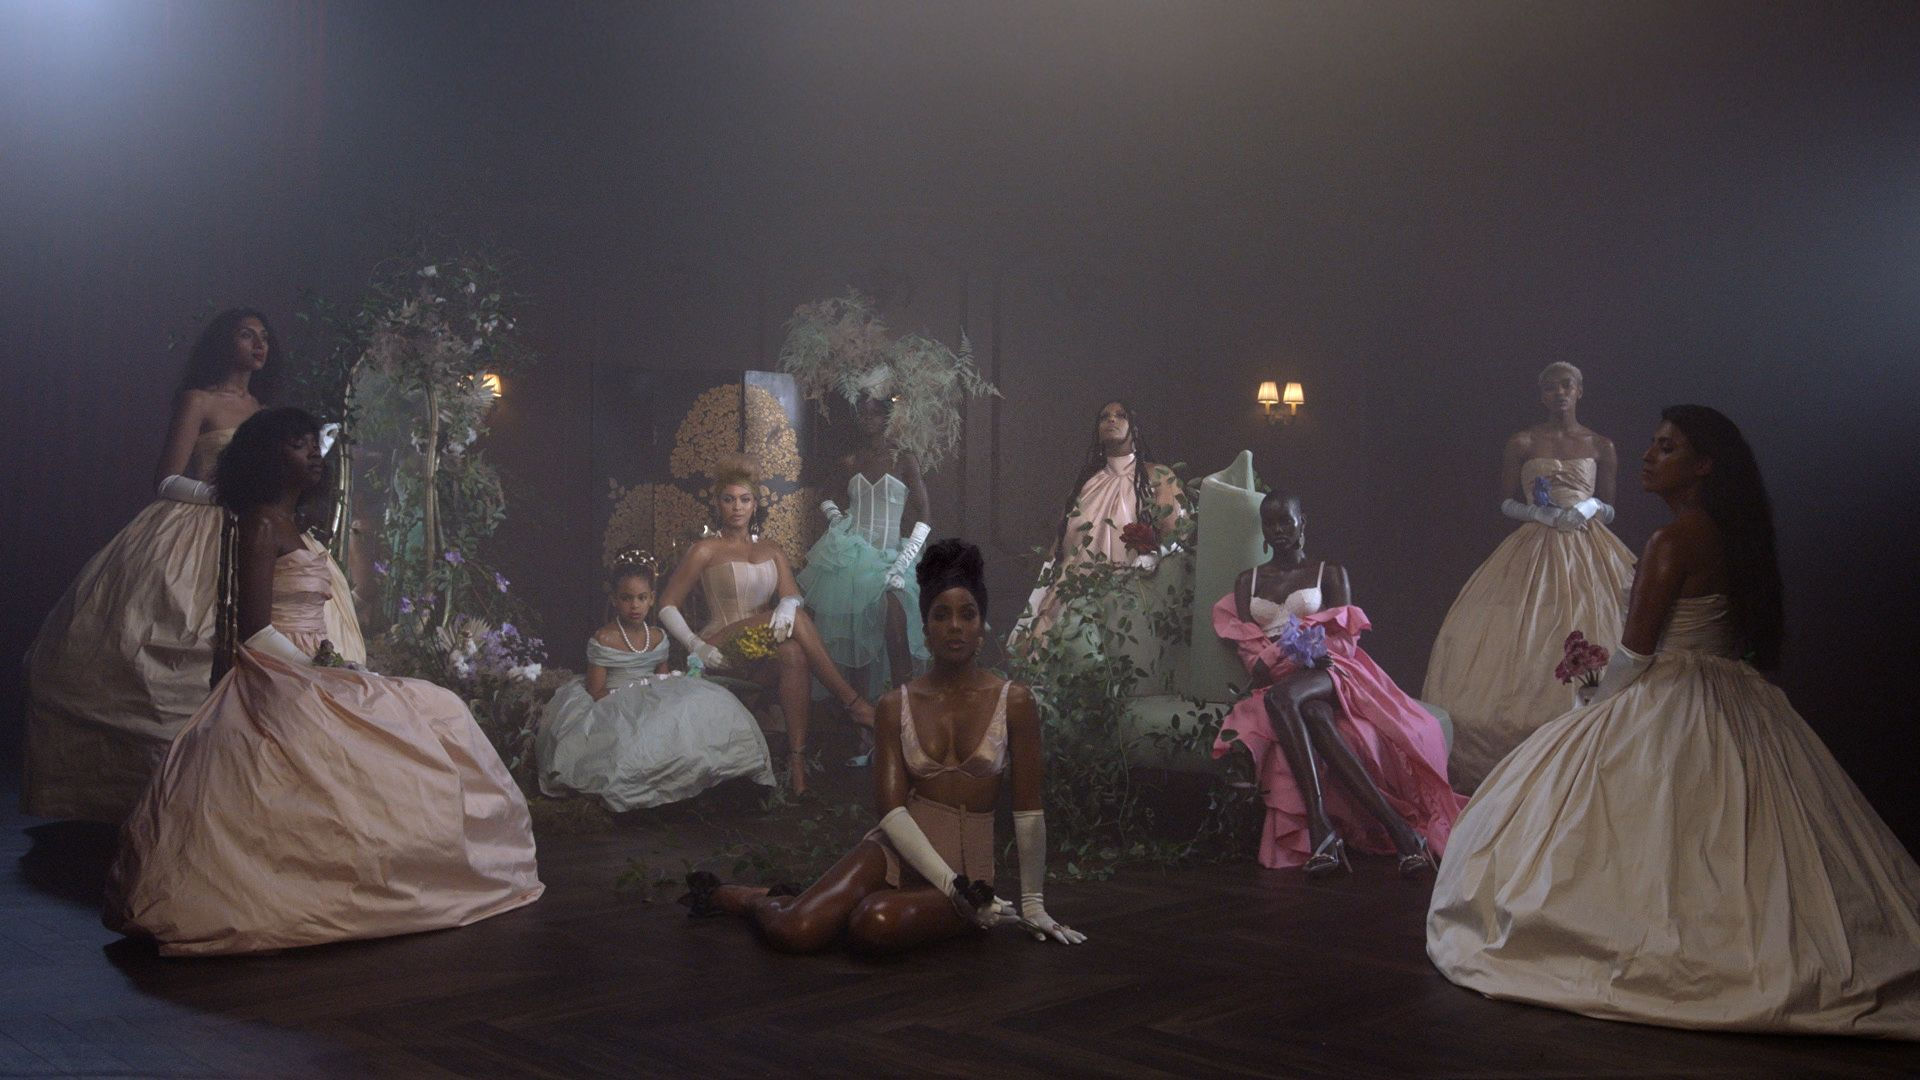 Beyonce Blue Ivy Carter and Kelly Rowland in Brown Skin Girl from the visual album BLACK IS KING, on Disney+